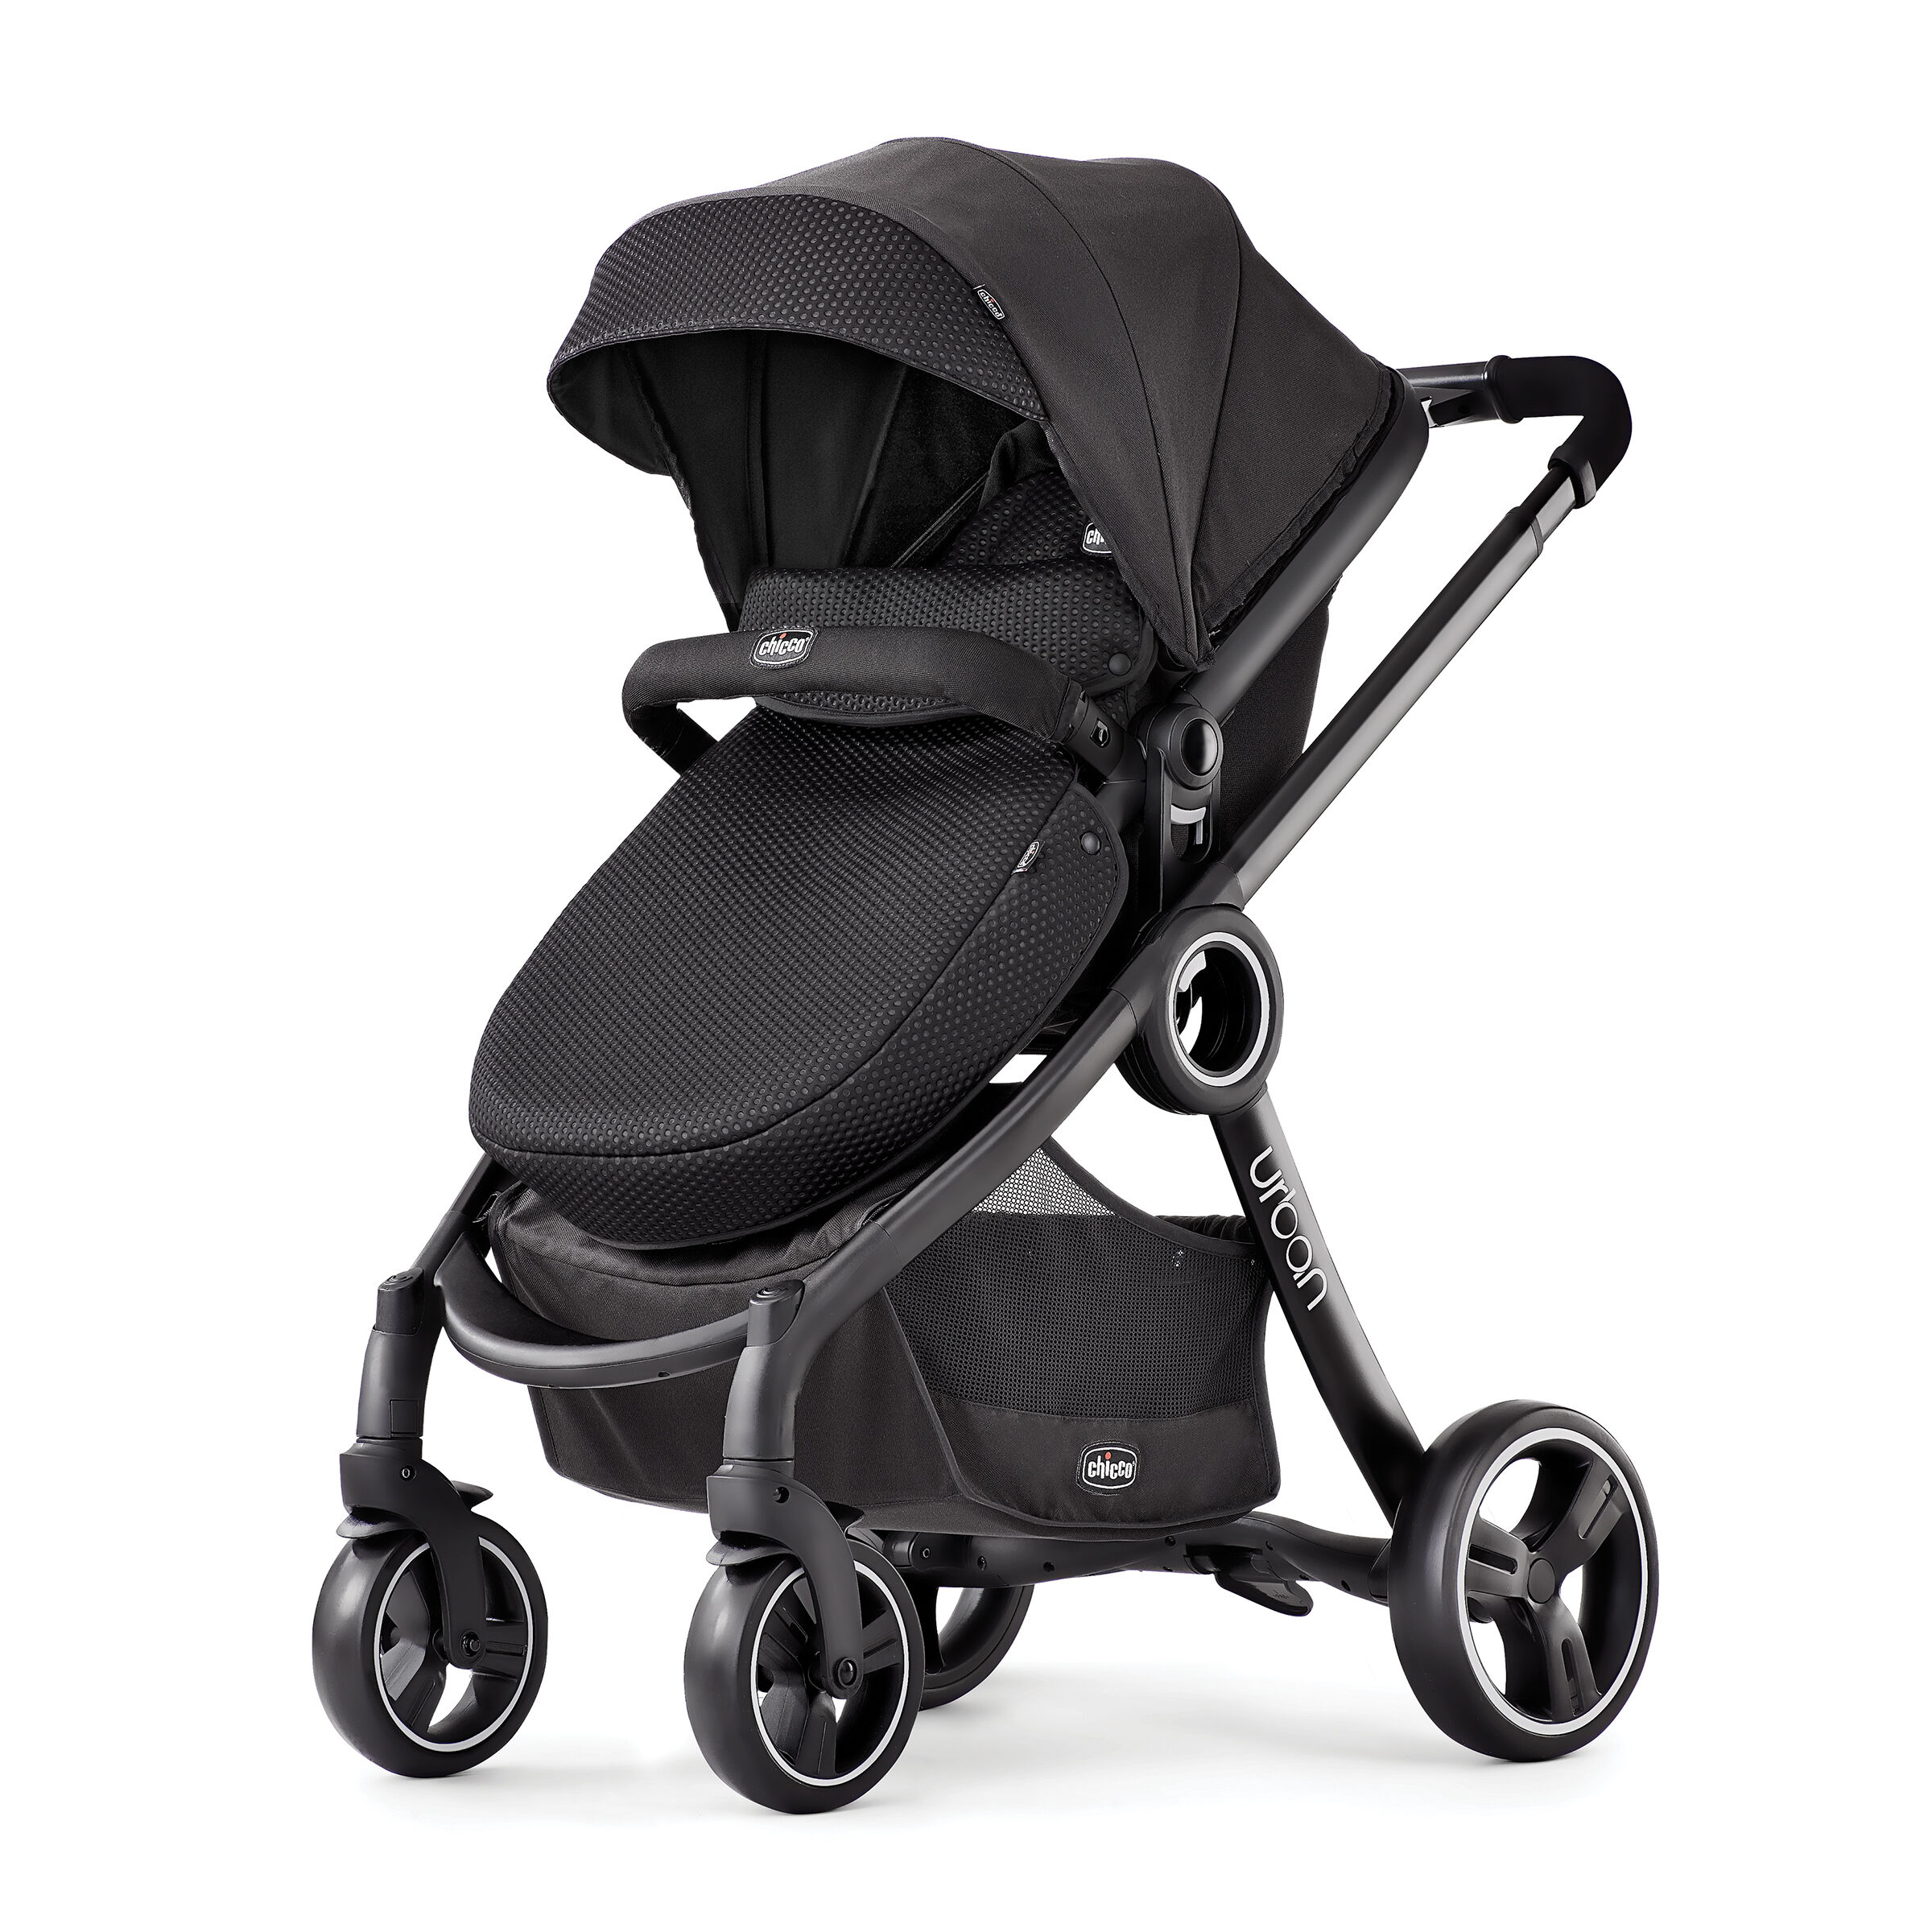 Chicco Stroller In 2 Chicco Urban 6 In 1 Modular Stroller Obsidian